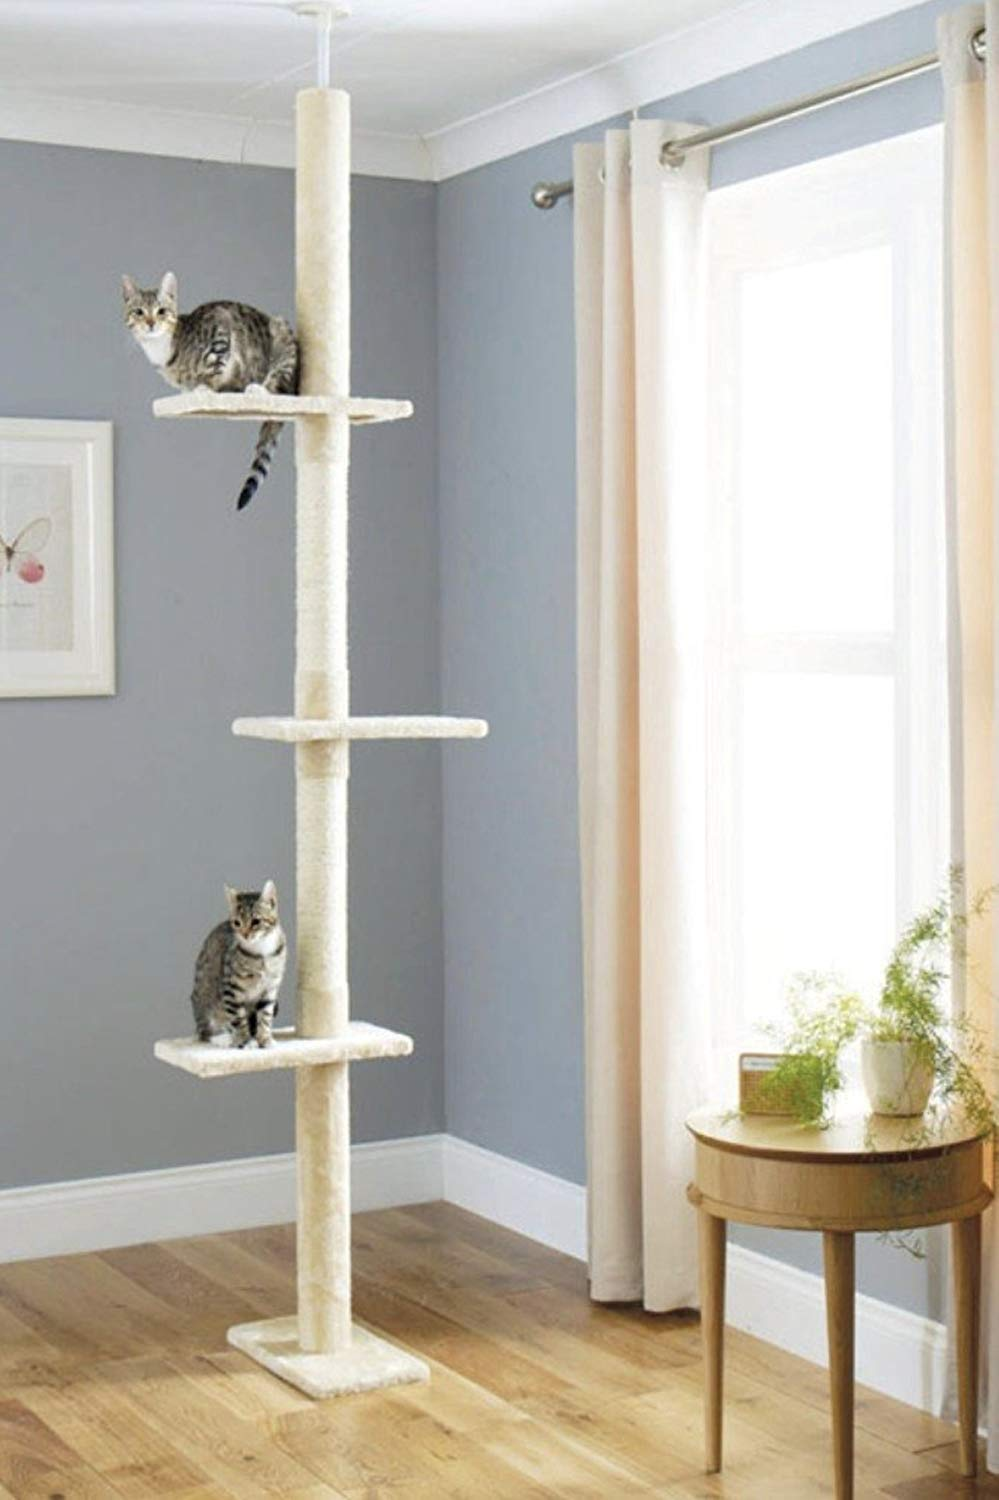 Cat Scratch Post Tree Floor to Ceiling 240cm-288cm (Please Measure Your Ceiling) | X-Large Luxury Cat Activity Scratching Tree | Includes 3 Scratch Twine Posts | Big Cat Tree That Extends If Needed